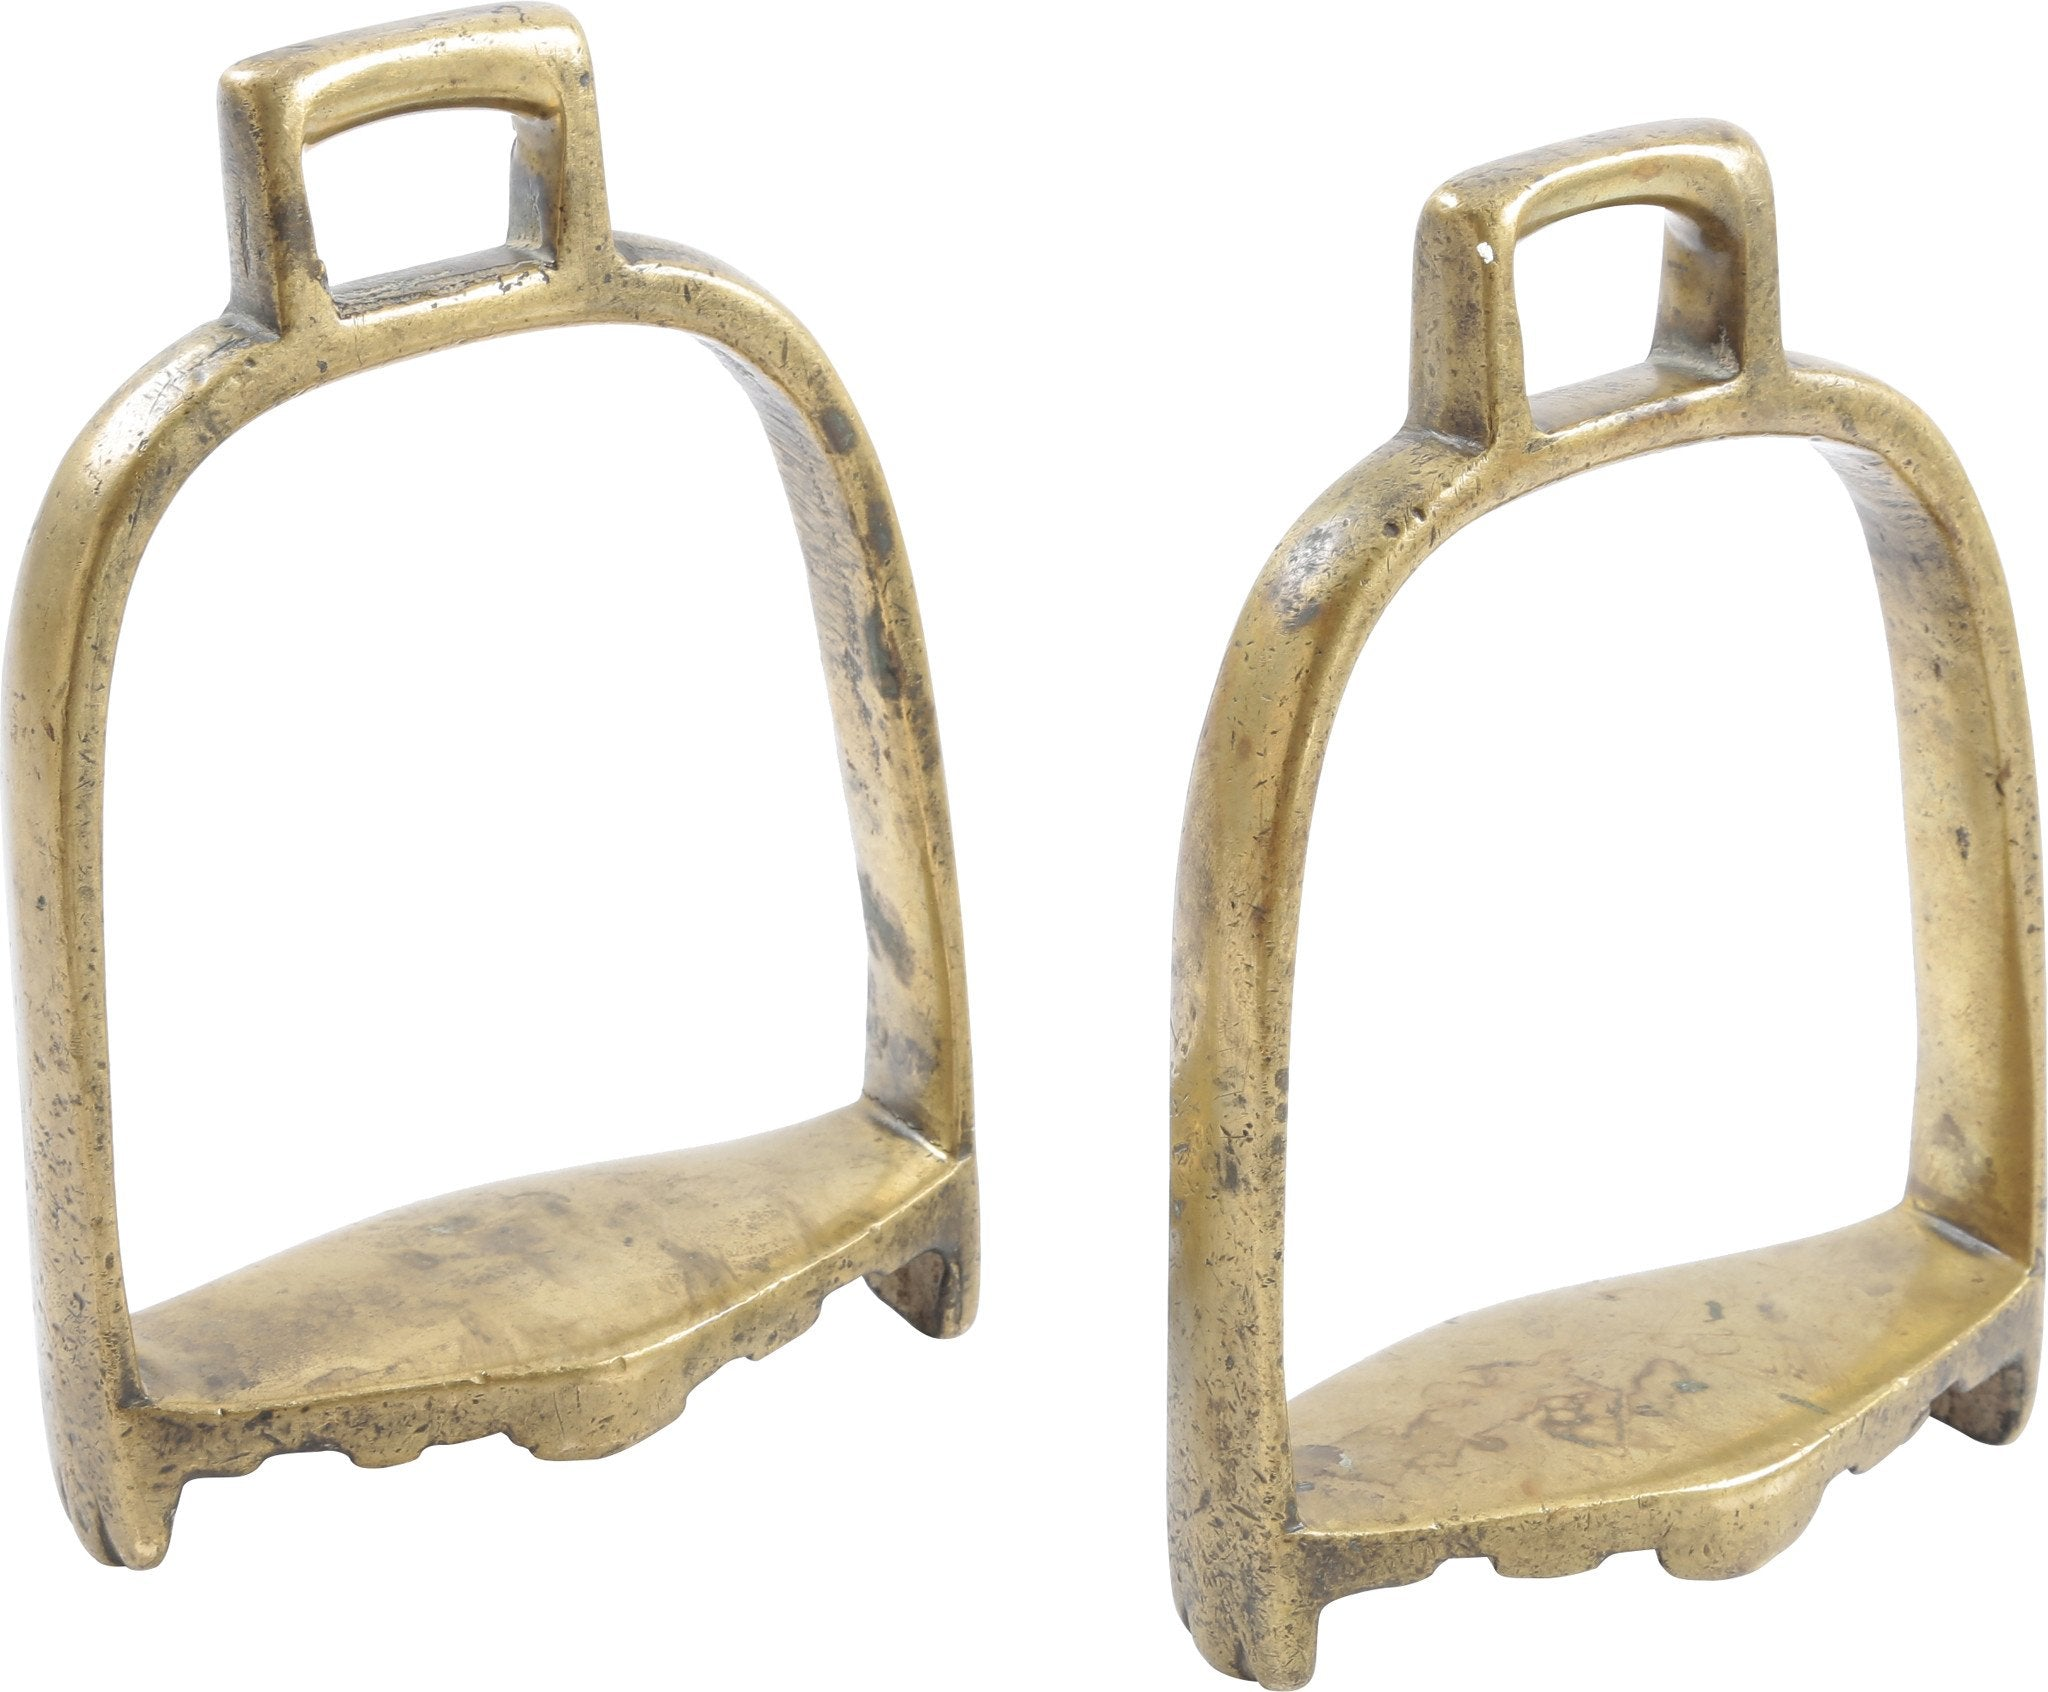 PAIR OF INDOPERSIAN STIRRUPS - Fagan Arms